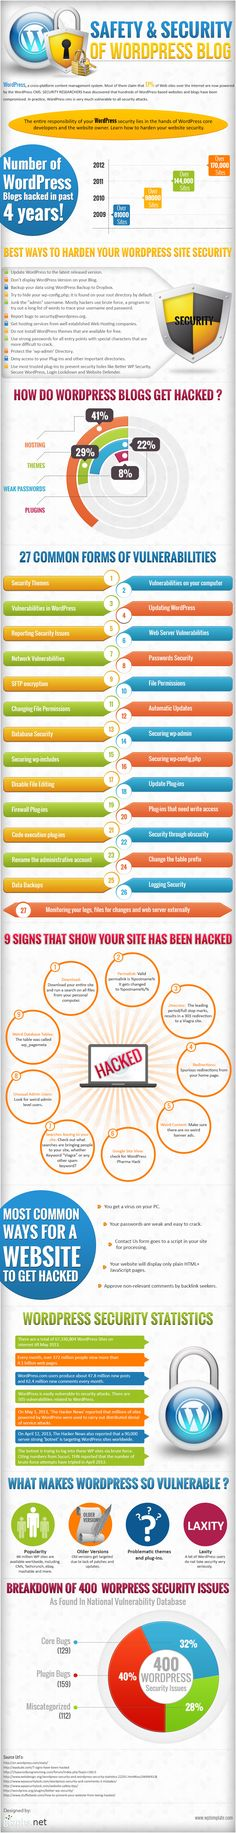 Safety and Security For WordPress Blogs (Infographic), and more > maybe a bit off topic, but what's the point of SEO and all that if your site gets hacked, right?